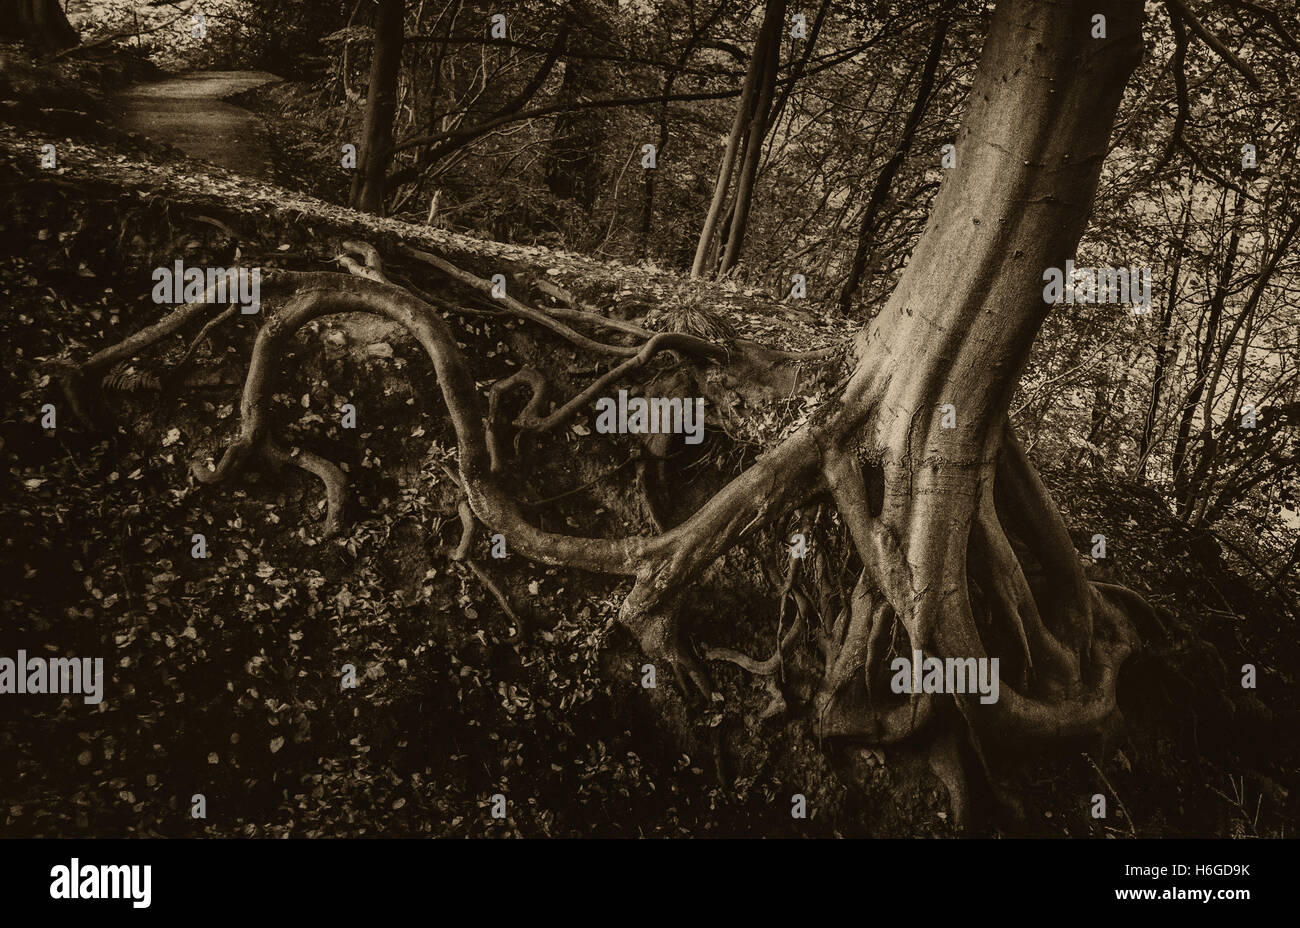 Exposed tree roots with a spooky feel, Bolton Abbey, Yorkshire, UK - Stock Image